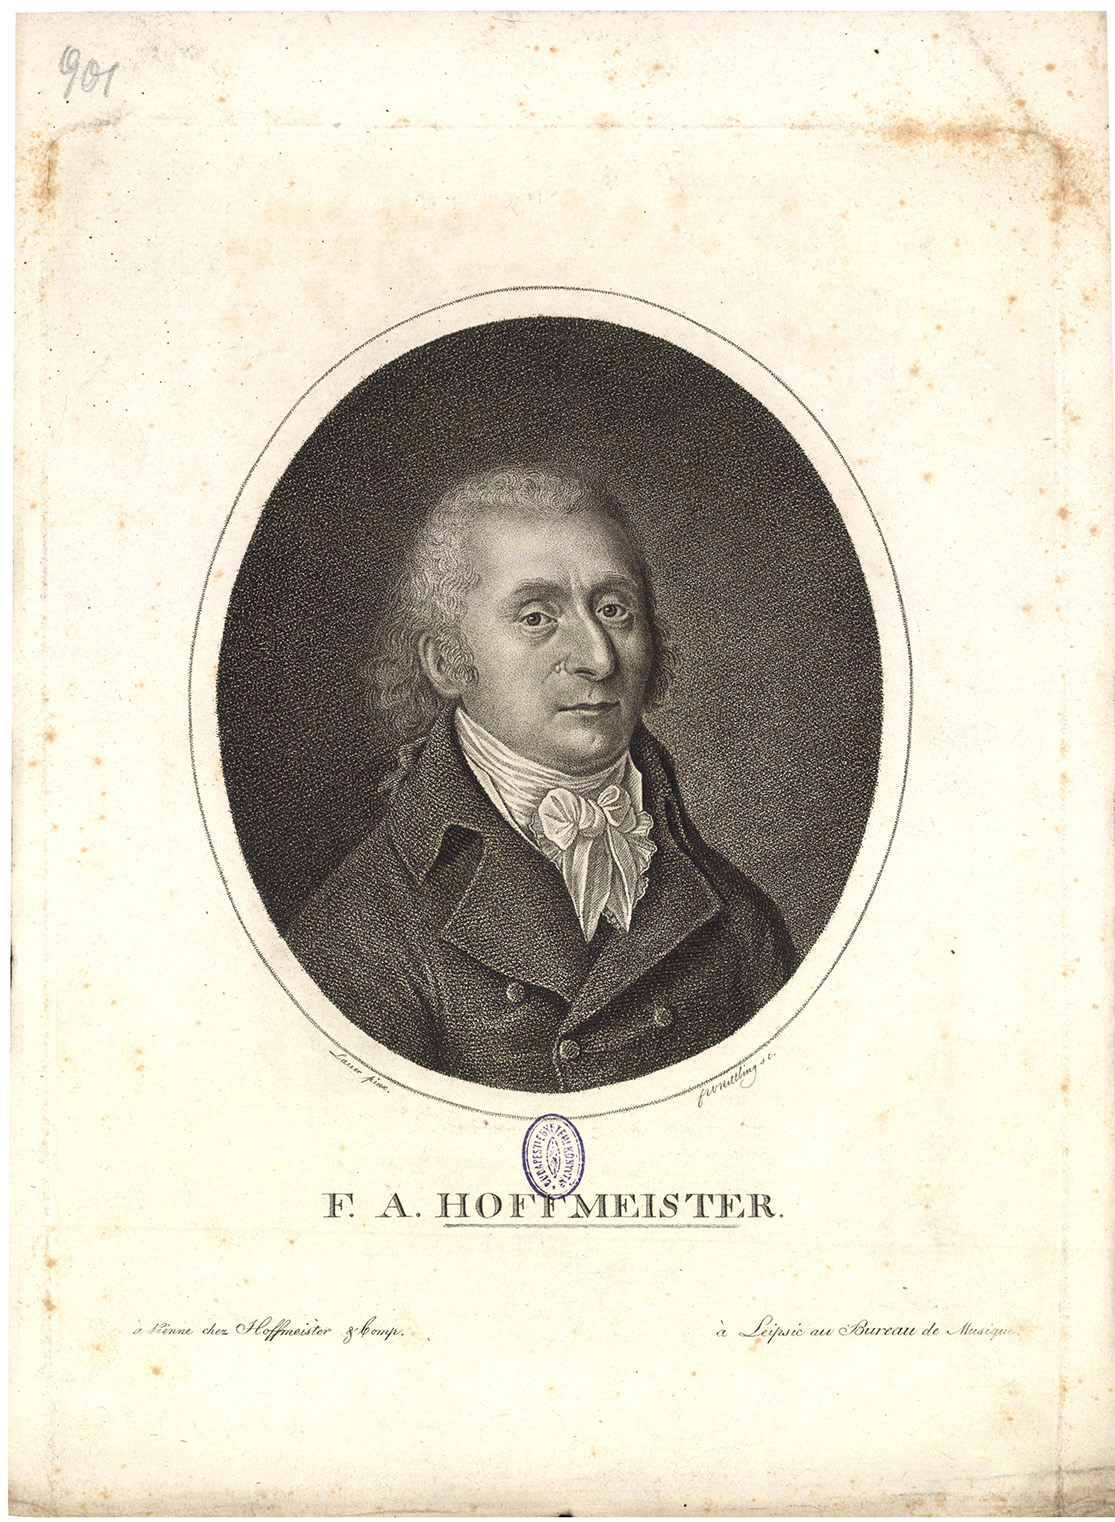 F. A. Hoffmeister